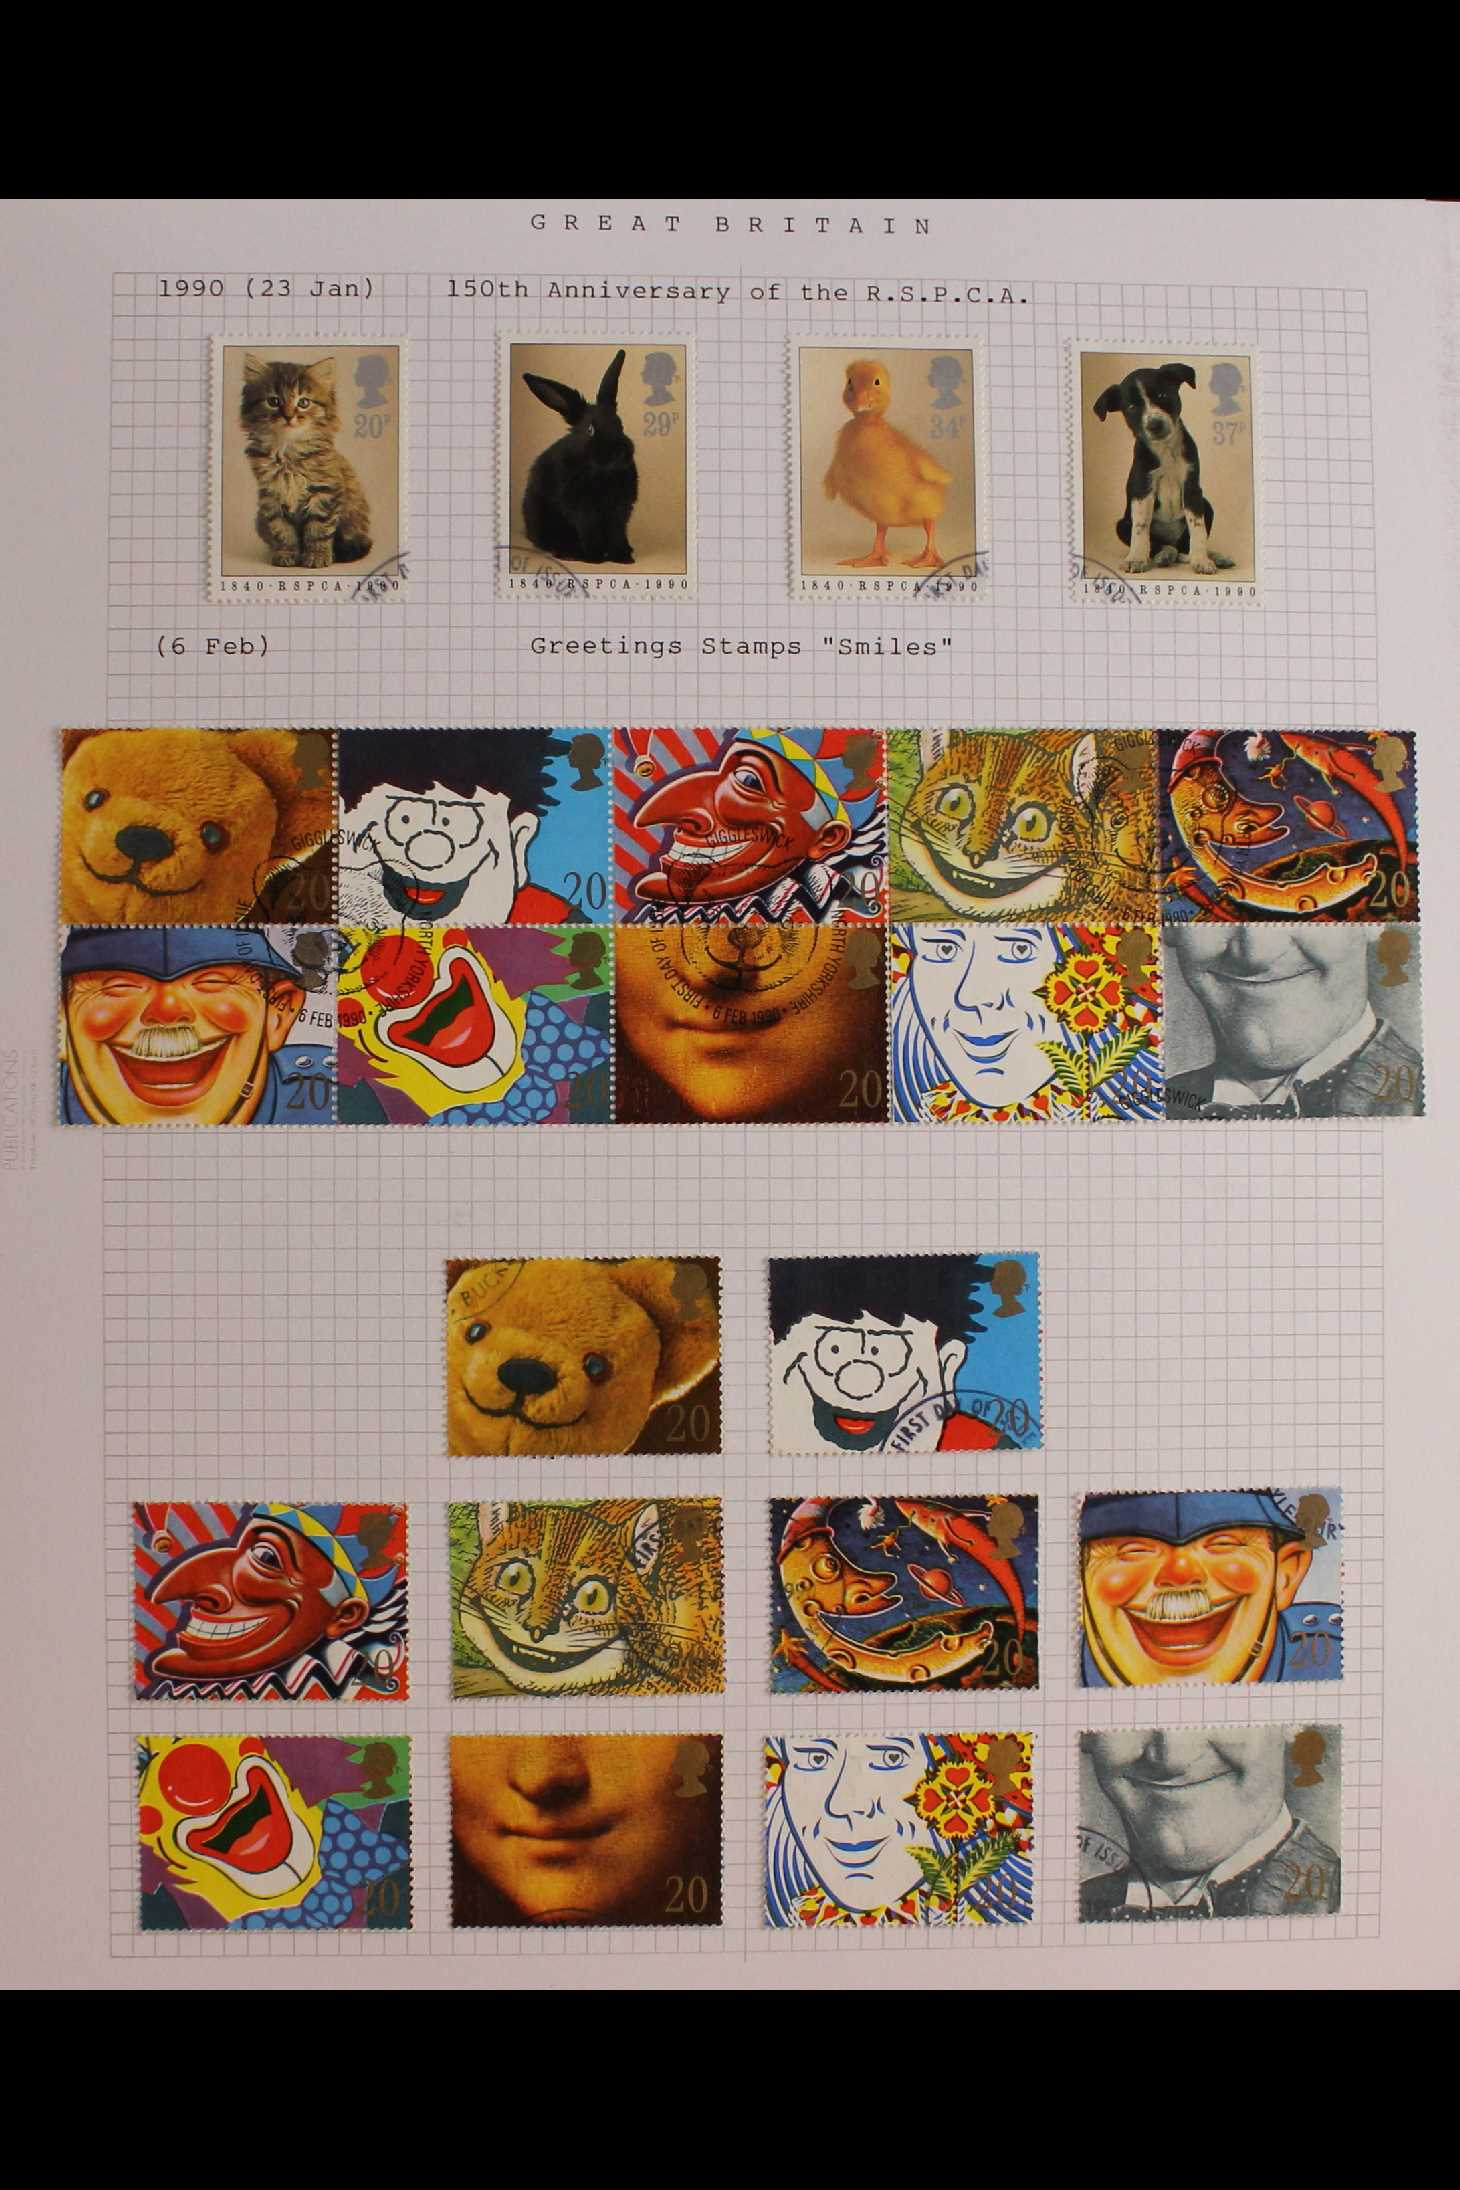 GB.ELIZABETH II 1953-1999 fine used collection in two albums with extensive Wilding & - Image 10 of 18